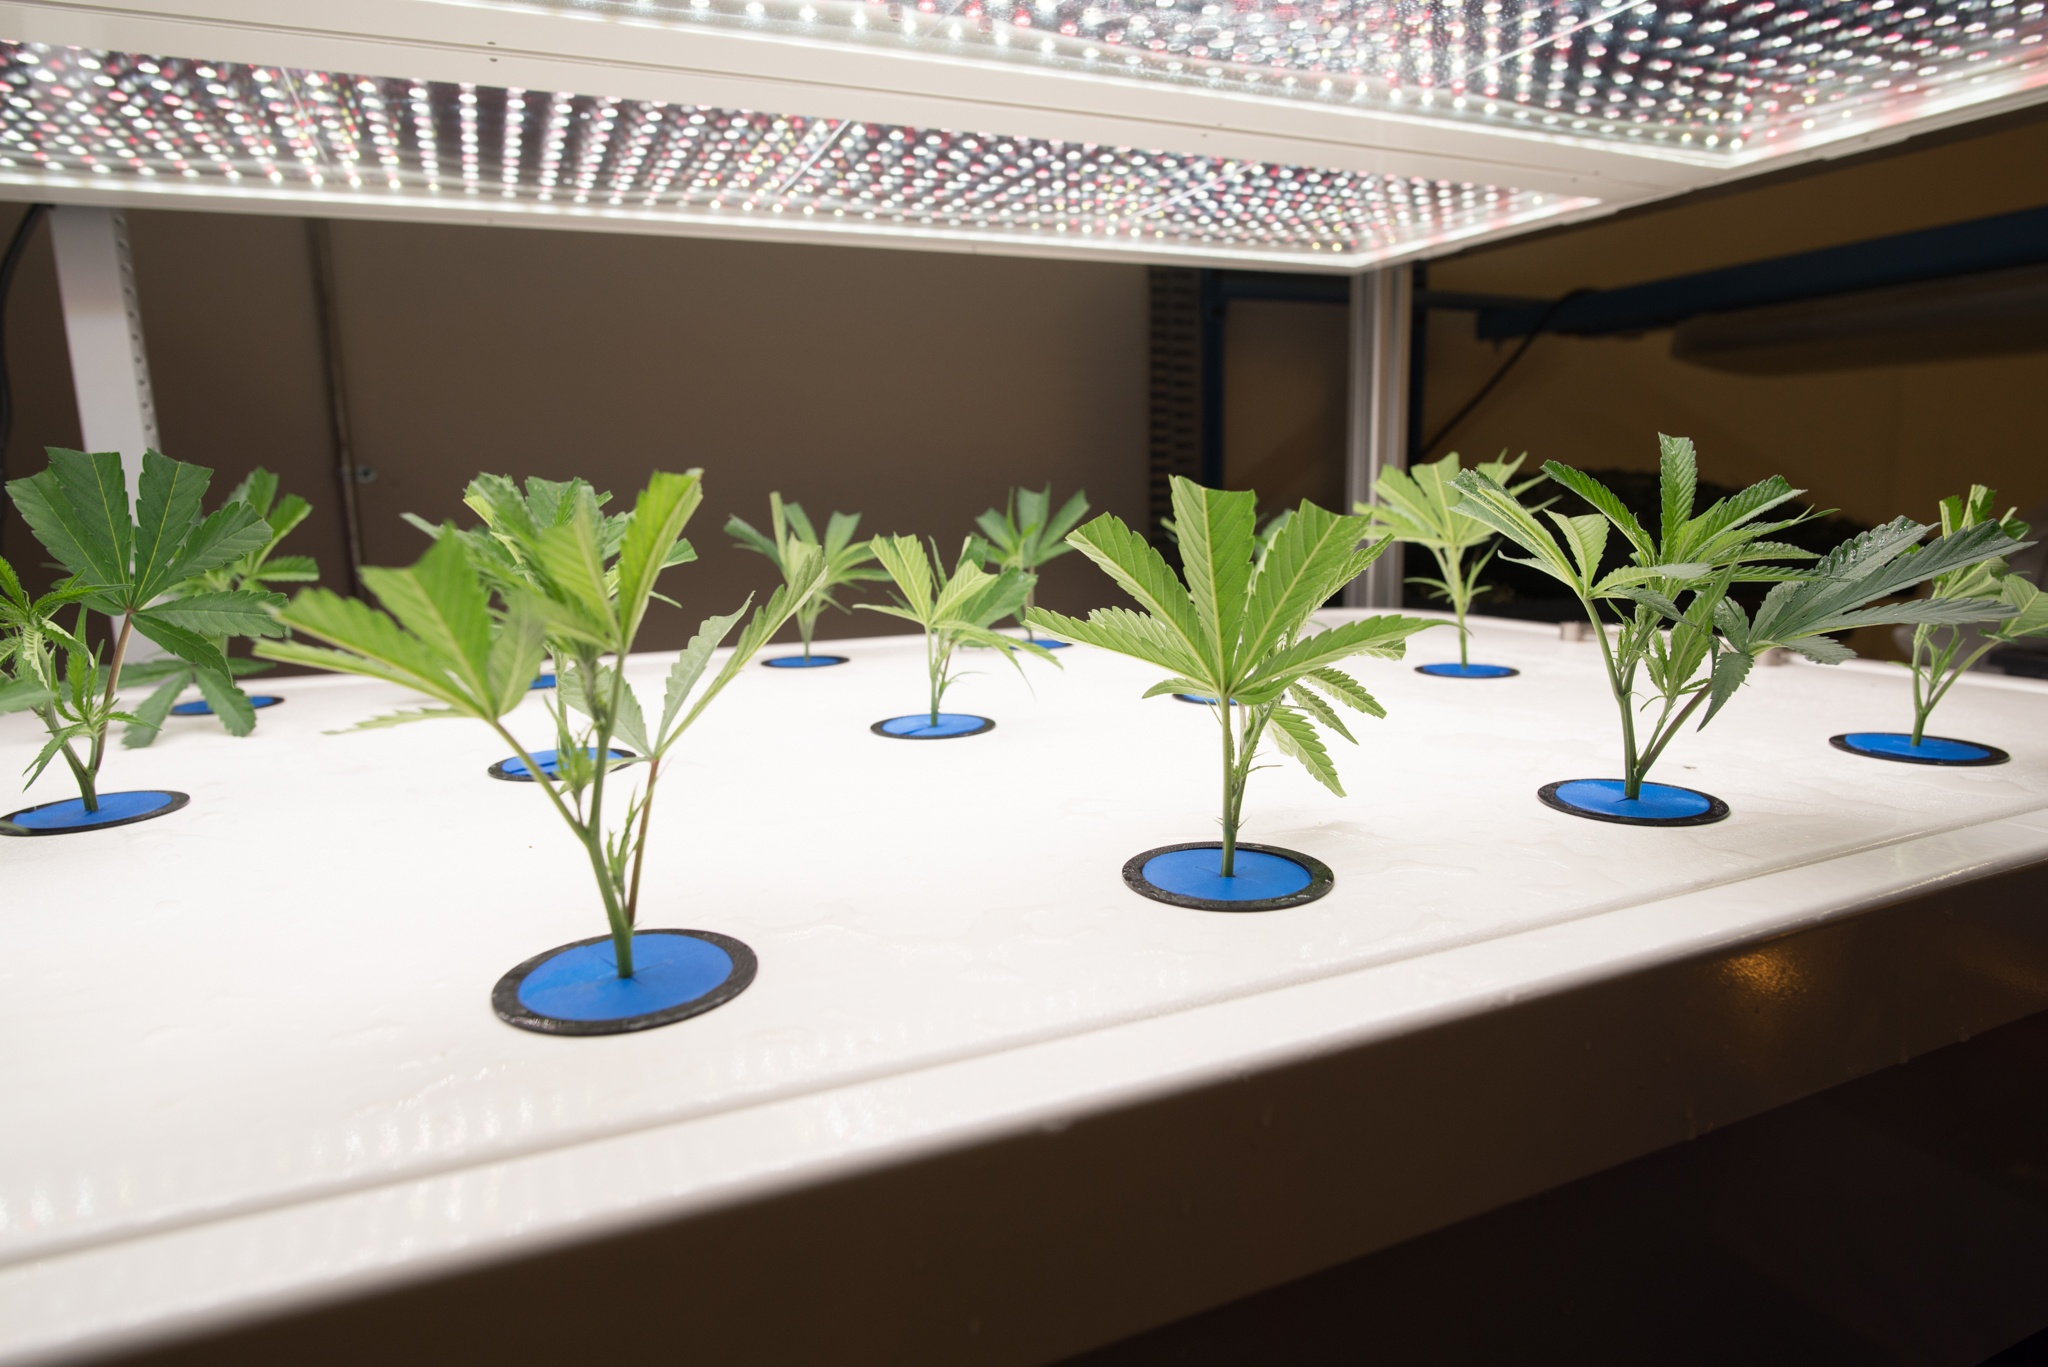 AessenseGrows Cultivation AEtrium-2 Placing Clones